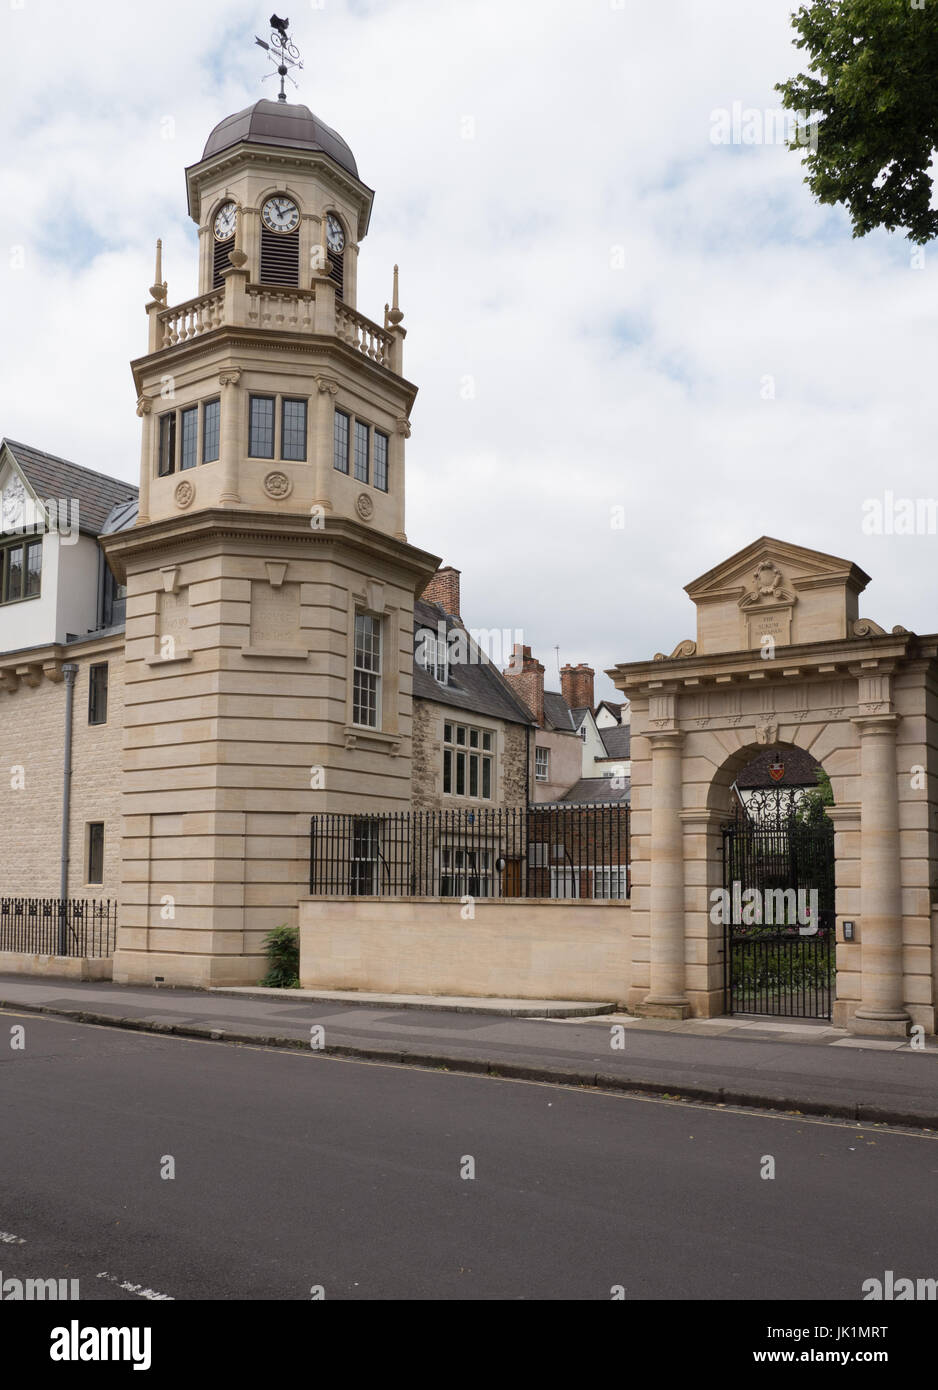 Manchester College and The Sukum Navpan Gate, Mansfield Road, Oxford, England, UK - Stock Image